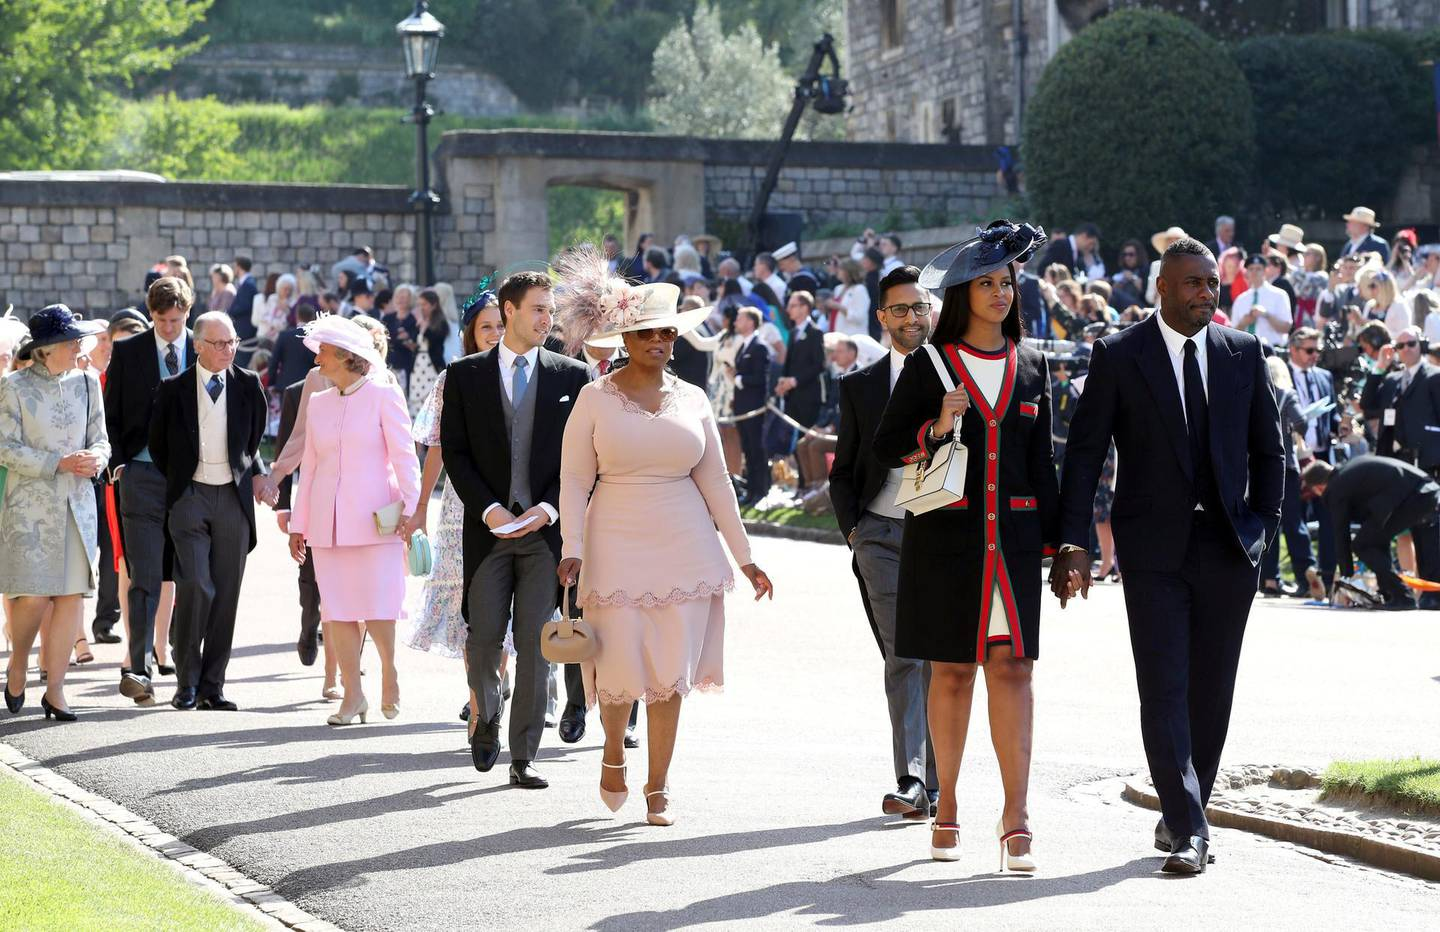 WINDSOR, UNITED KINGDOM - MAY 19: Idris Elba and Sabrina Dhowre followed by Oprah Winfrey (fourth right) arrive at St George's Chapel at Windsor Castle for the wedding of Meghan Markle  and Prince Harry on May 19, 2018 in Windsor, England. (Photo by Chris Radburn - WPA Pool/Getty Images)